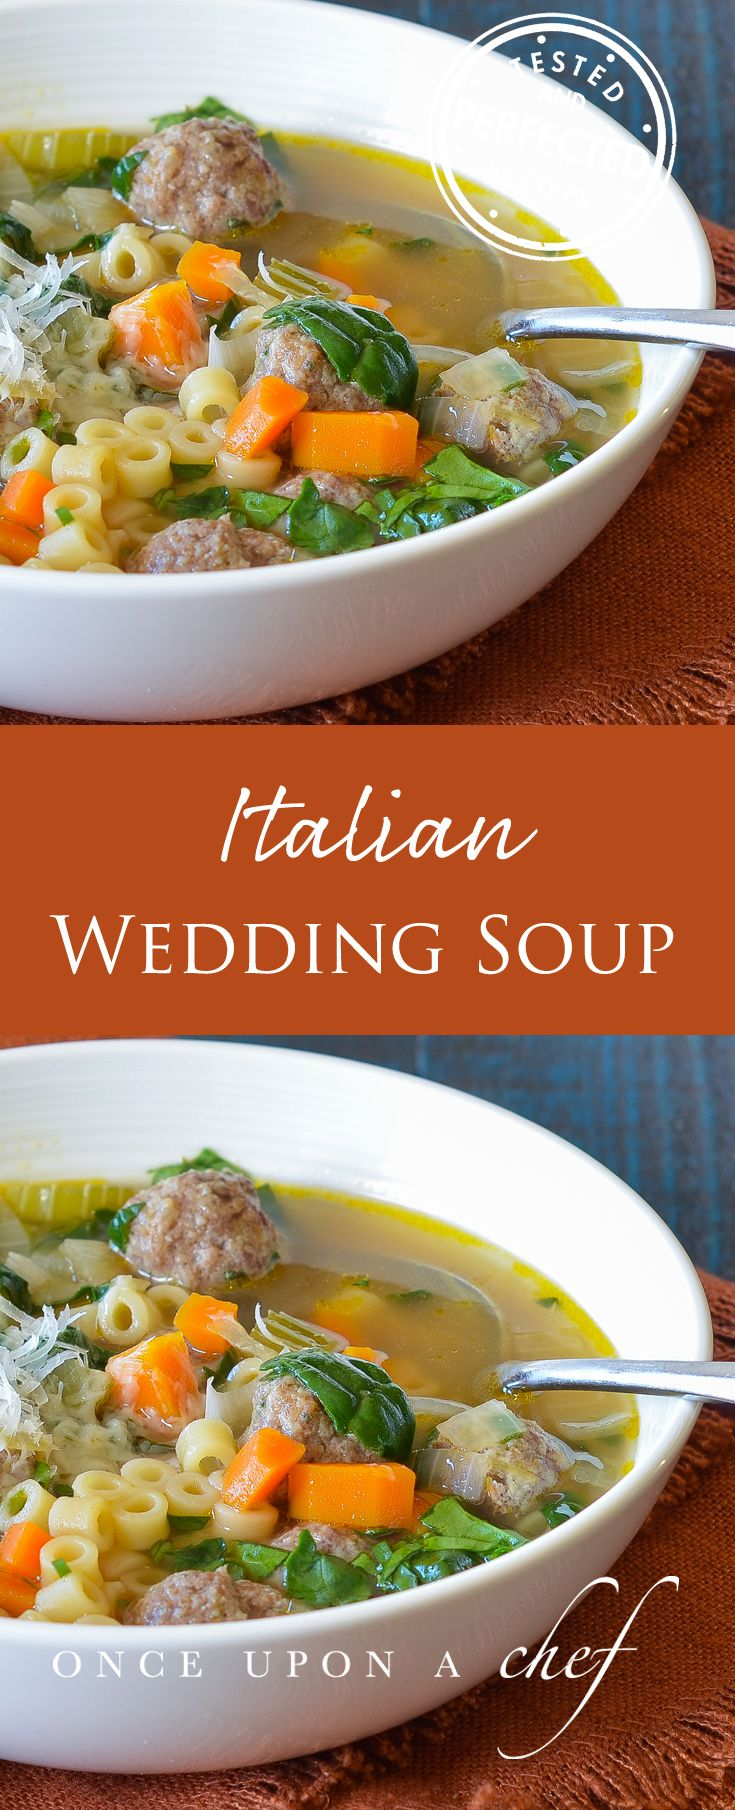 Italian Wedding Soup - Once Upon a Chef